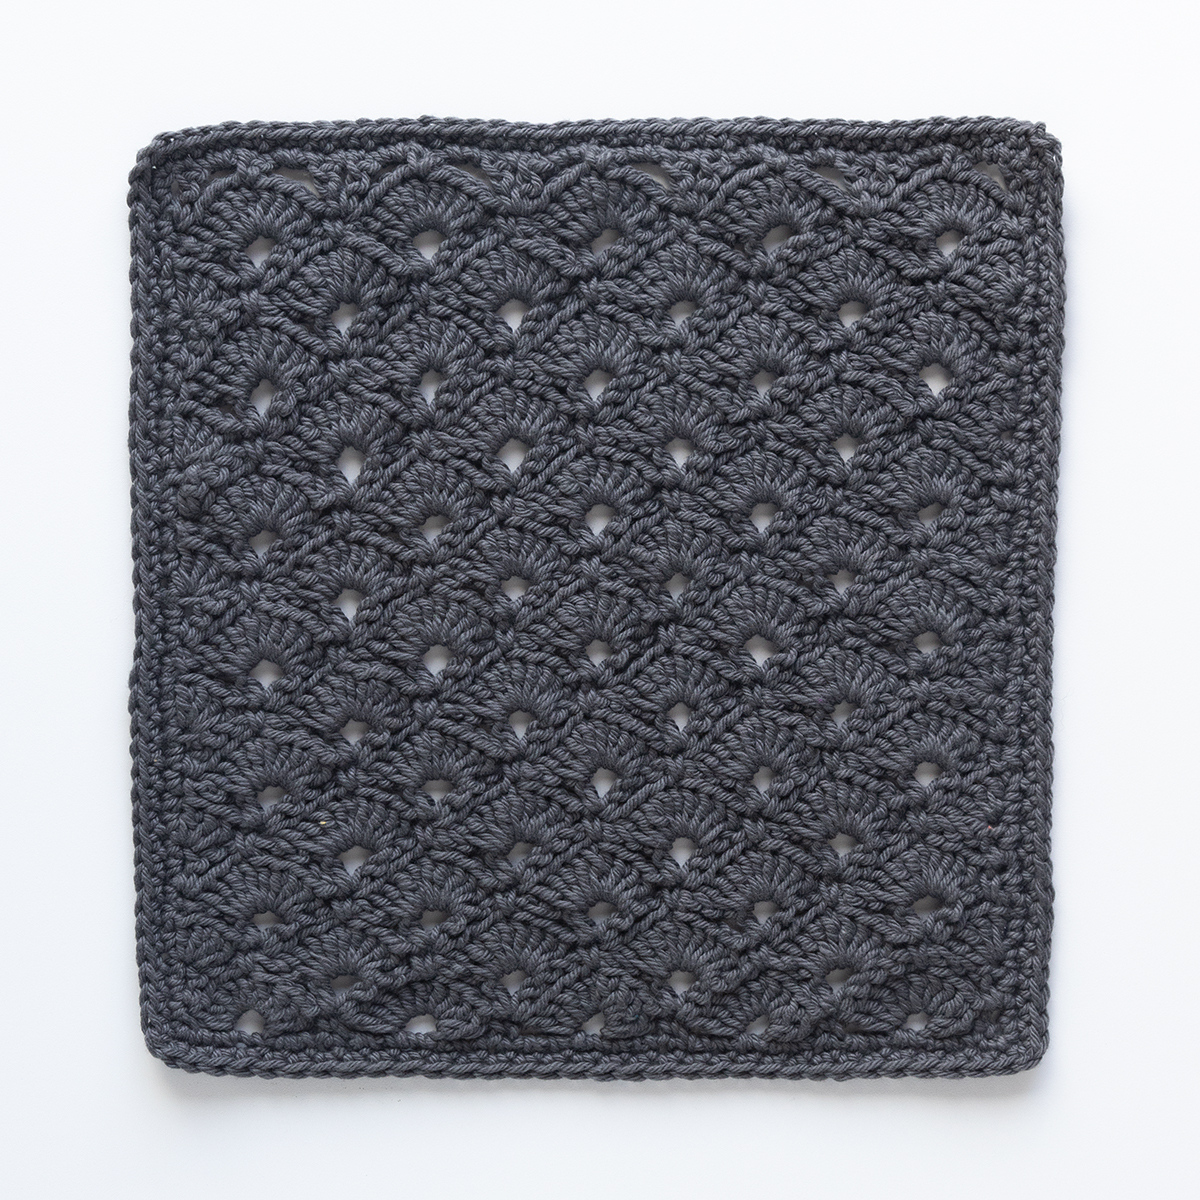 Jazz Age Crochet Washcloth